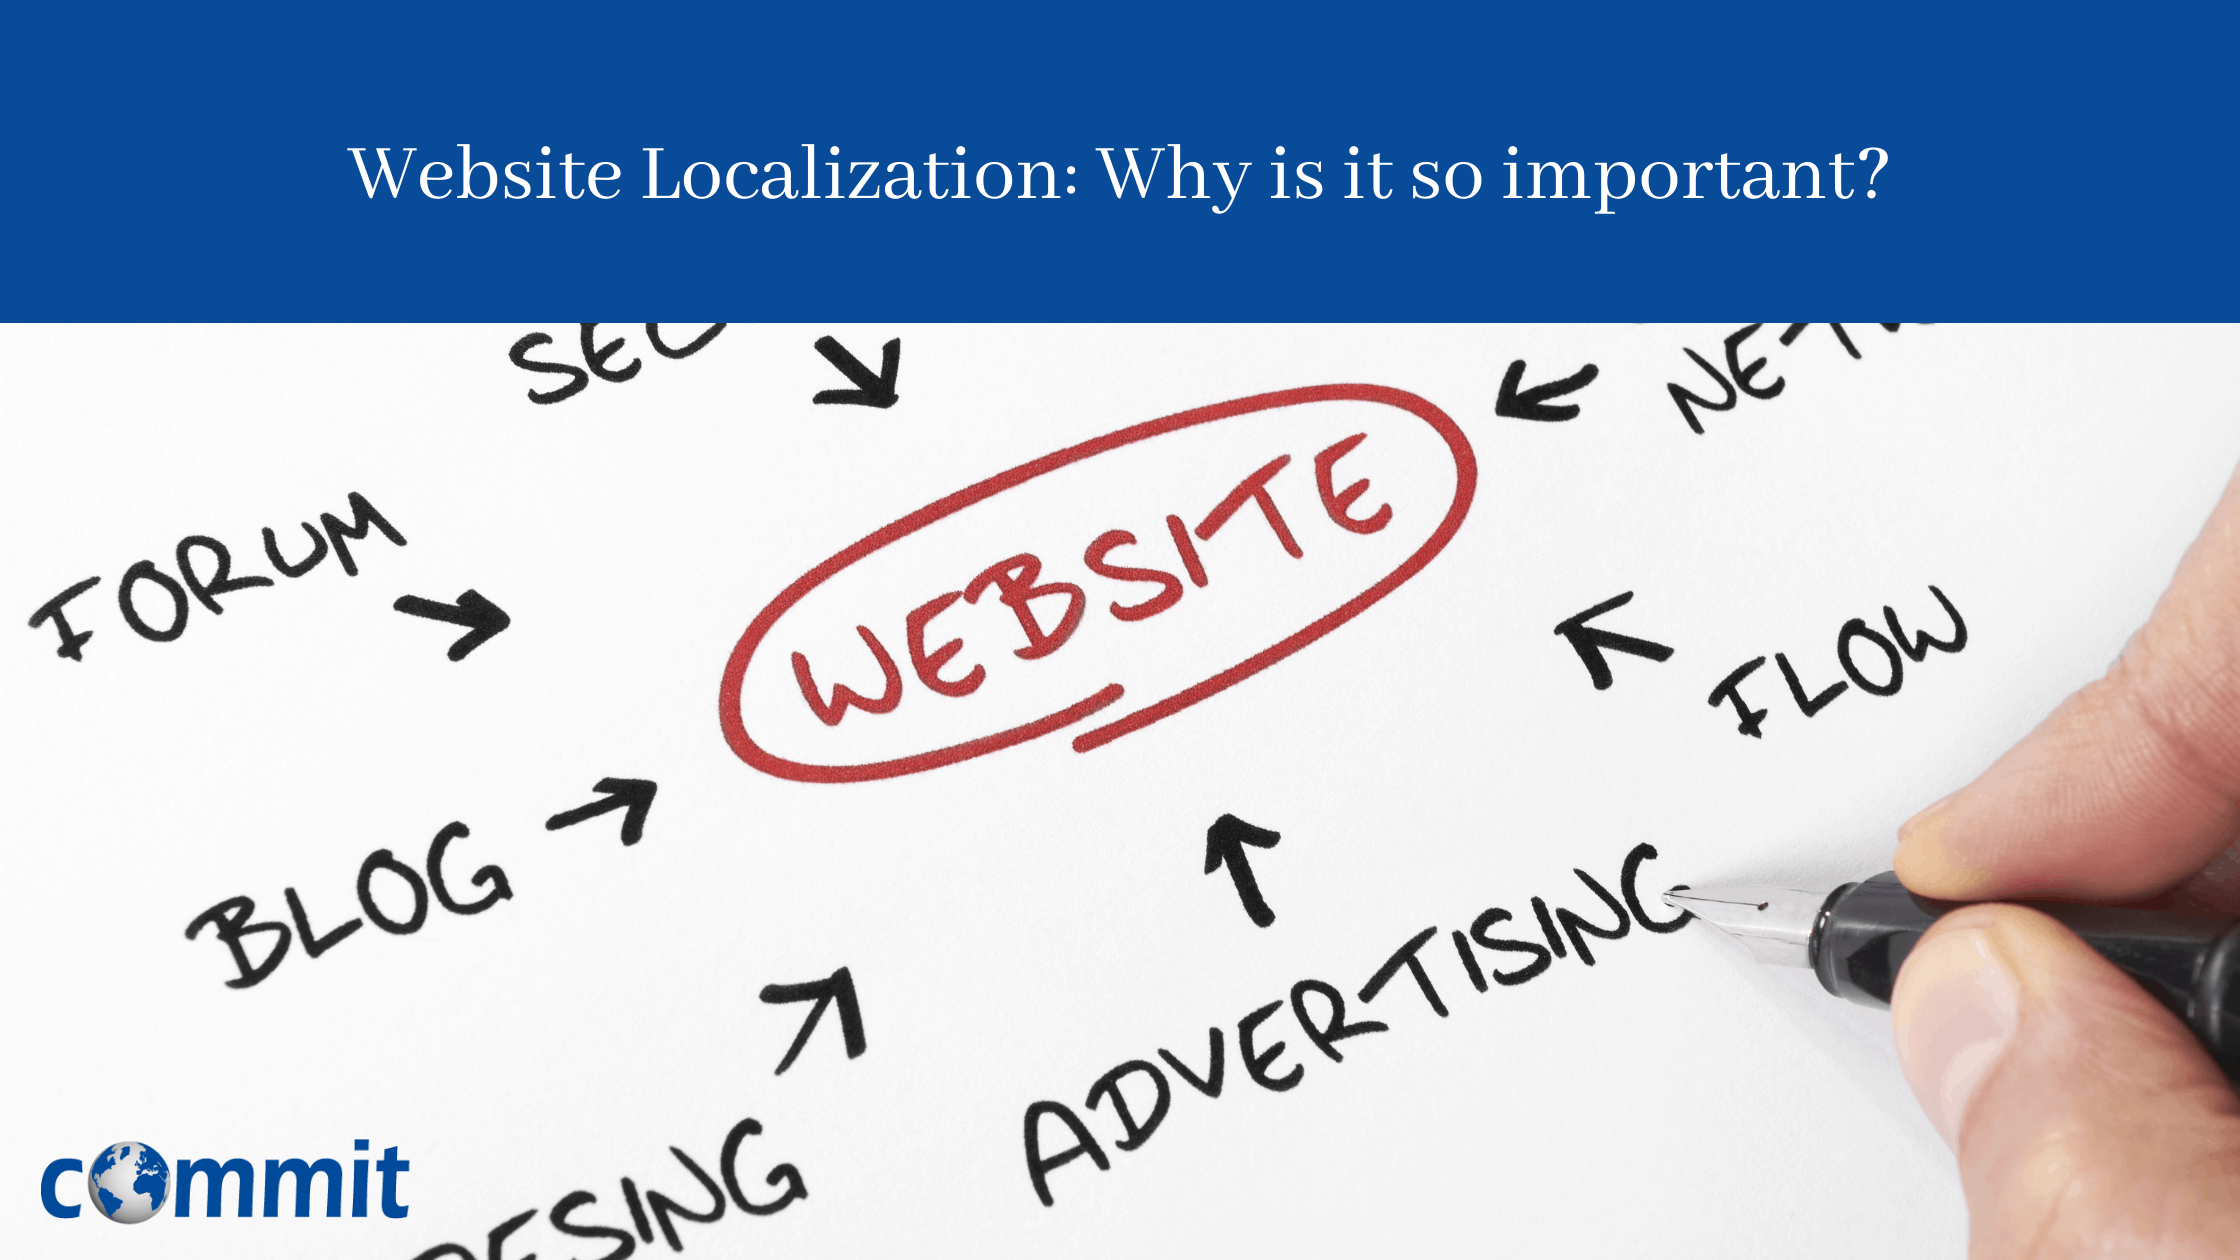 Website Localization: Why is it so important?